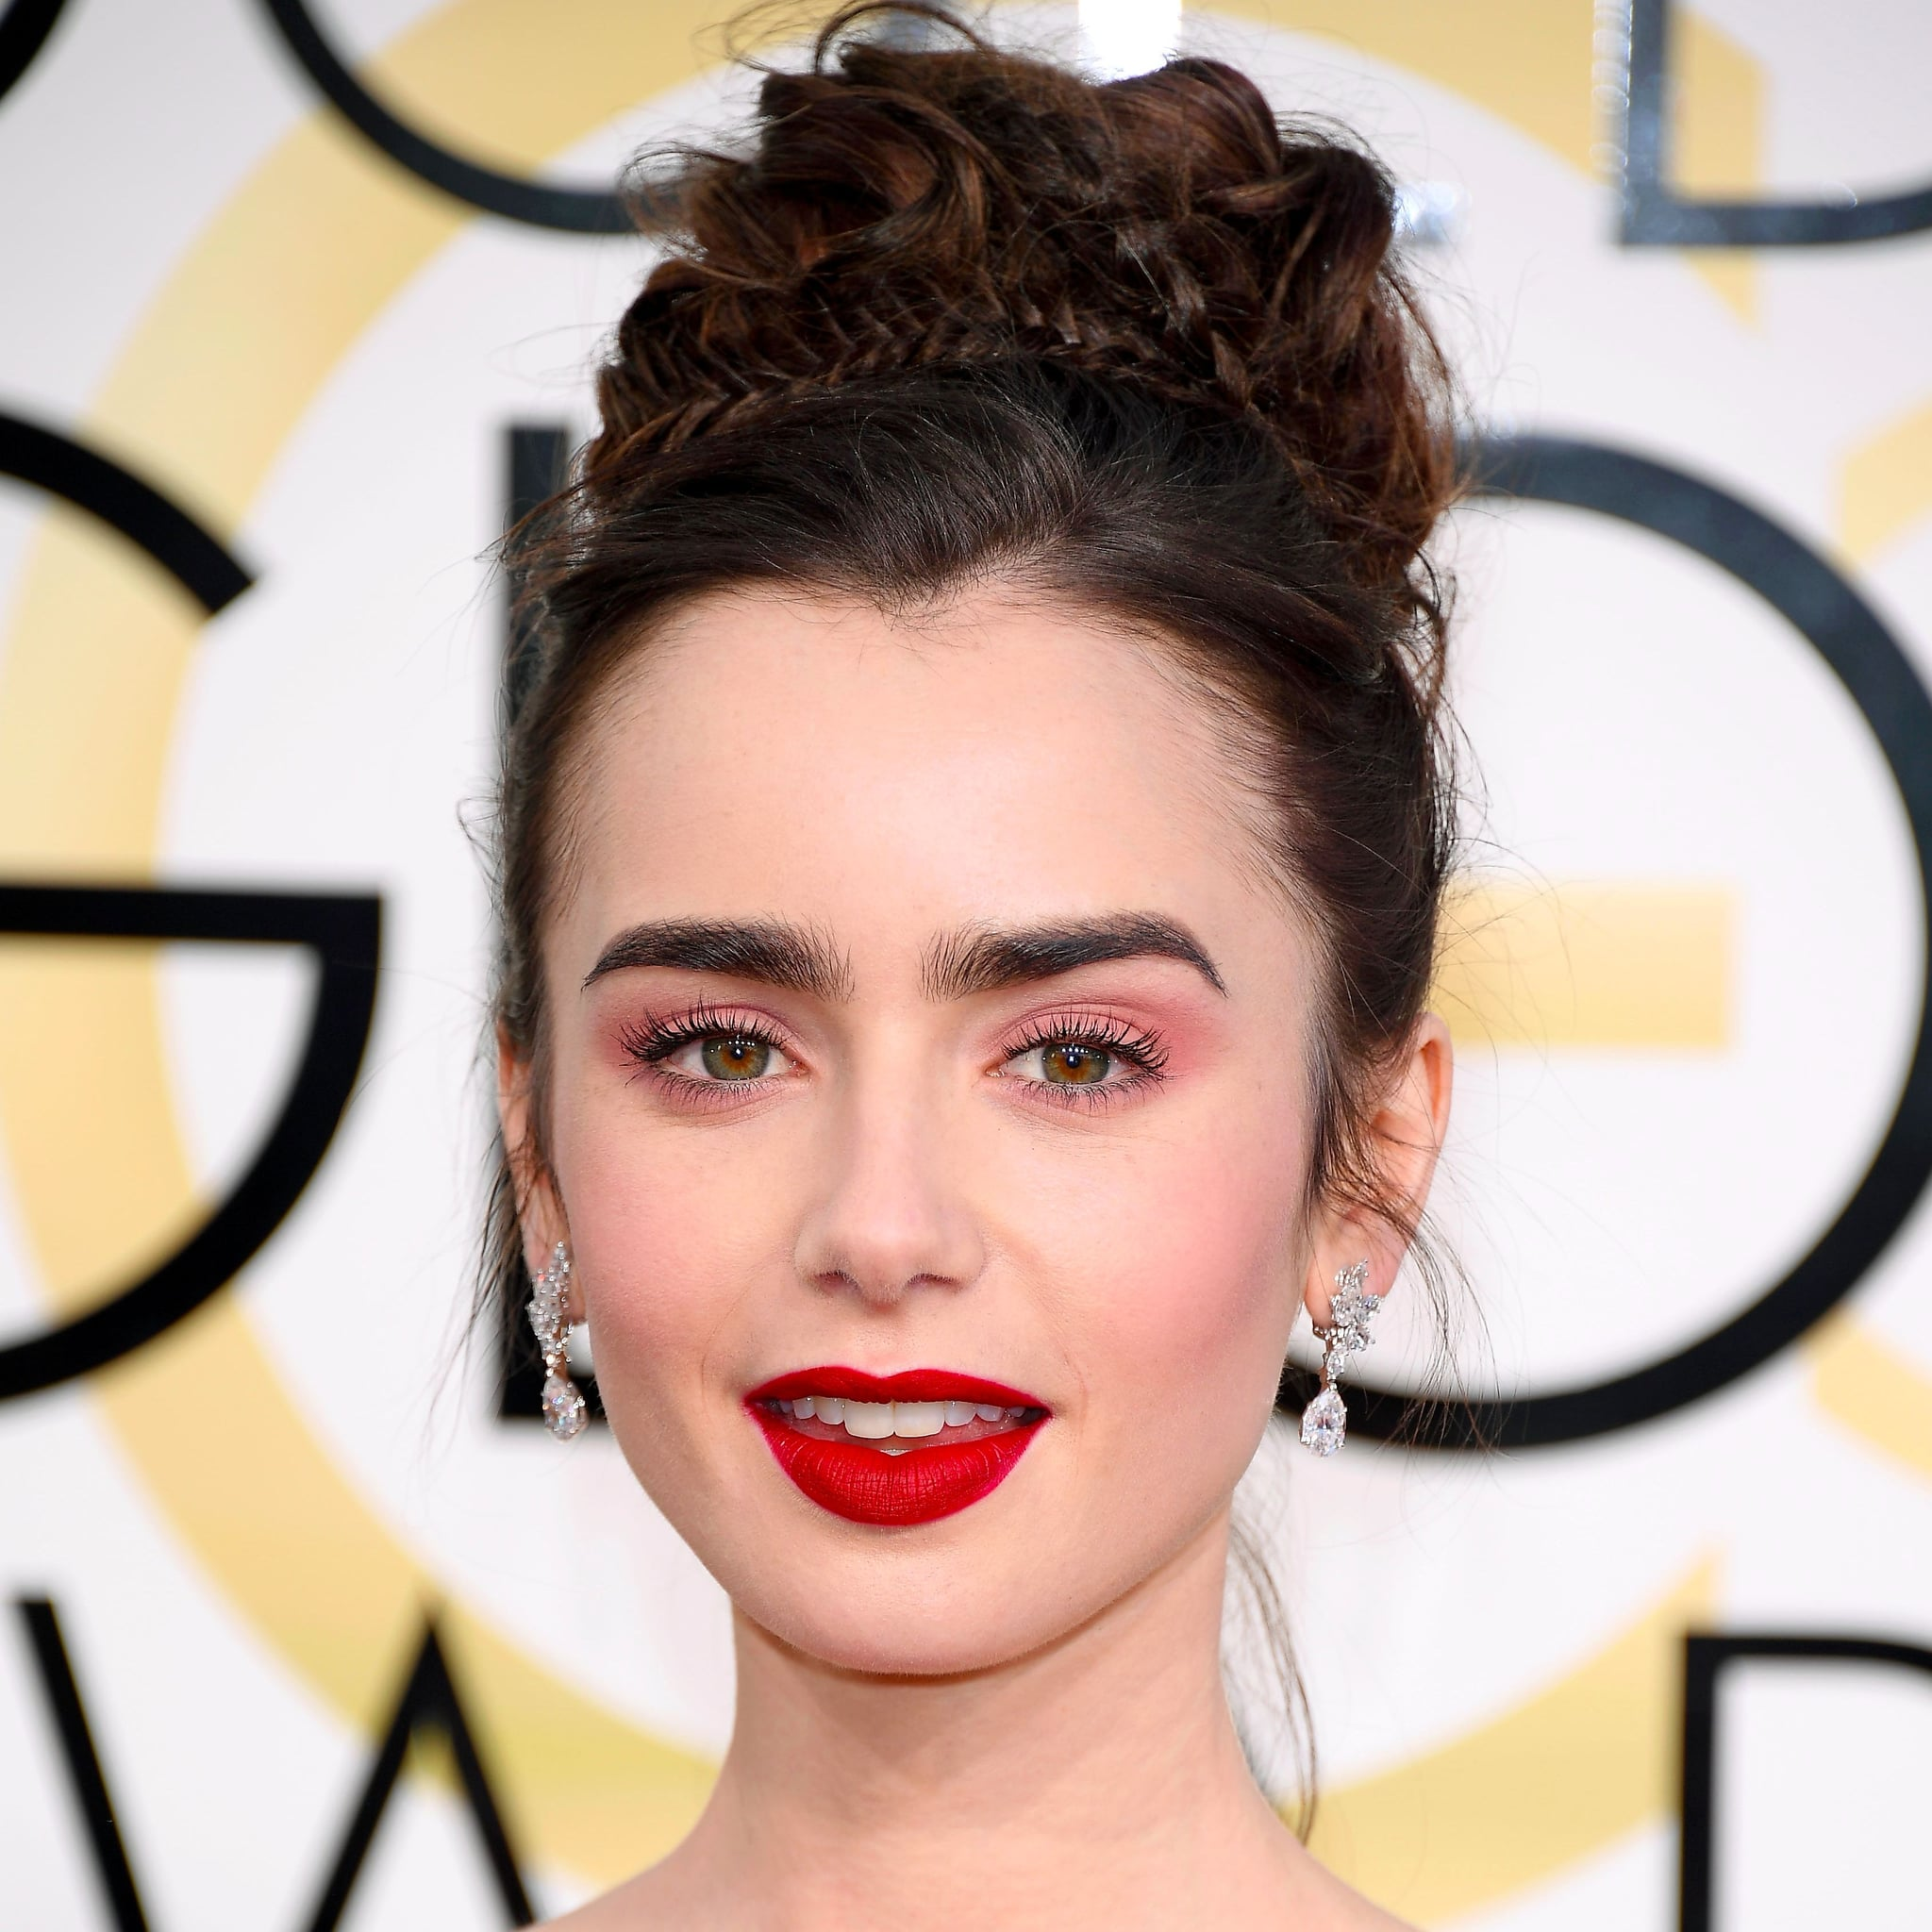 From lily collins hairstyles 2017 best haircuts and hair colors - Lily Collins Hair And Makeup At The 2017 Golden Globes Popsugar Beauty